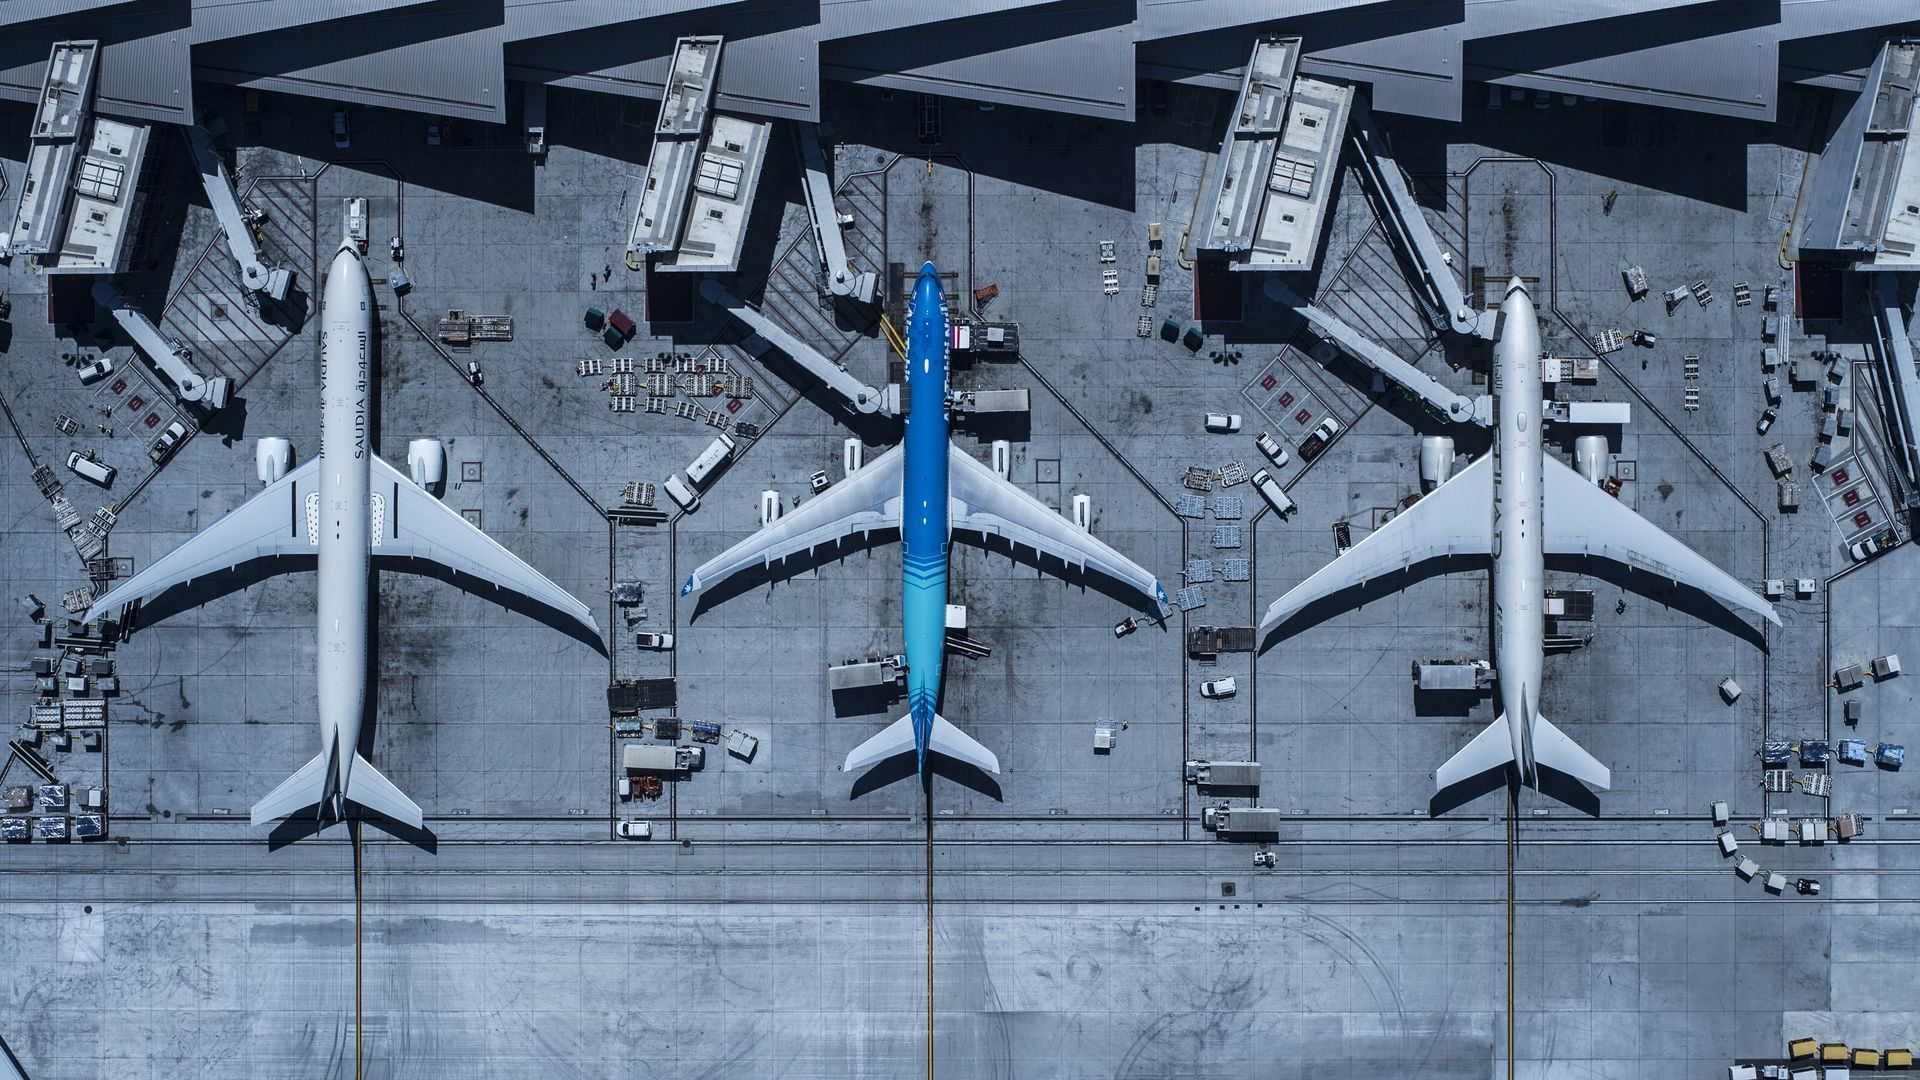 Three airplanes docked at airport terminals